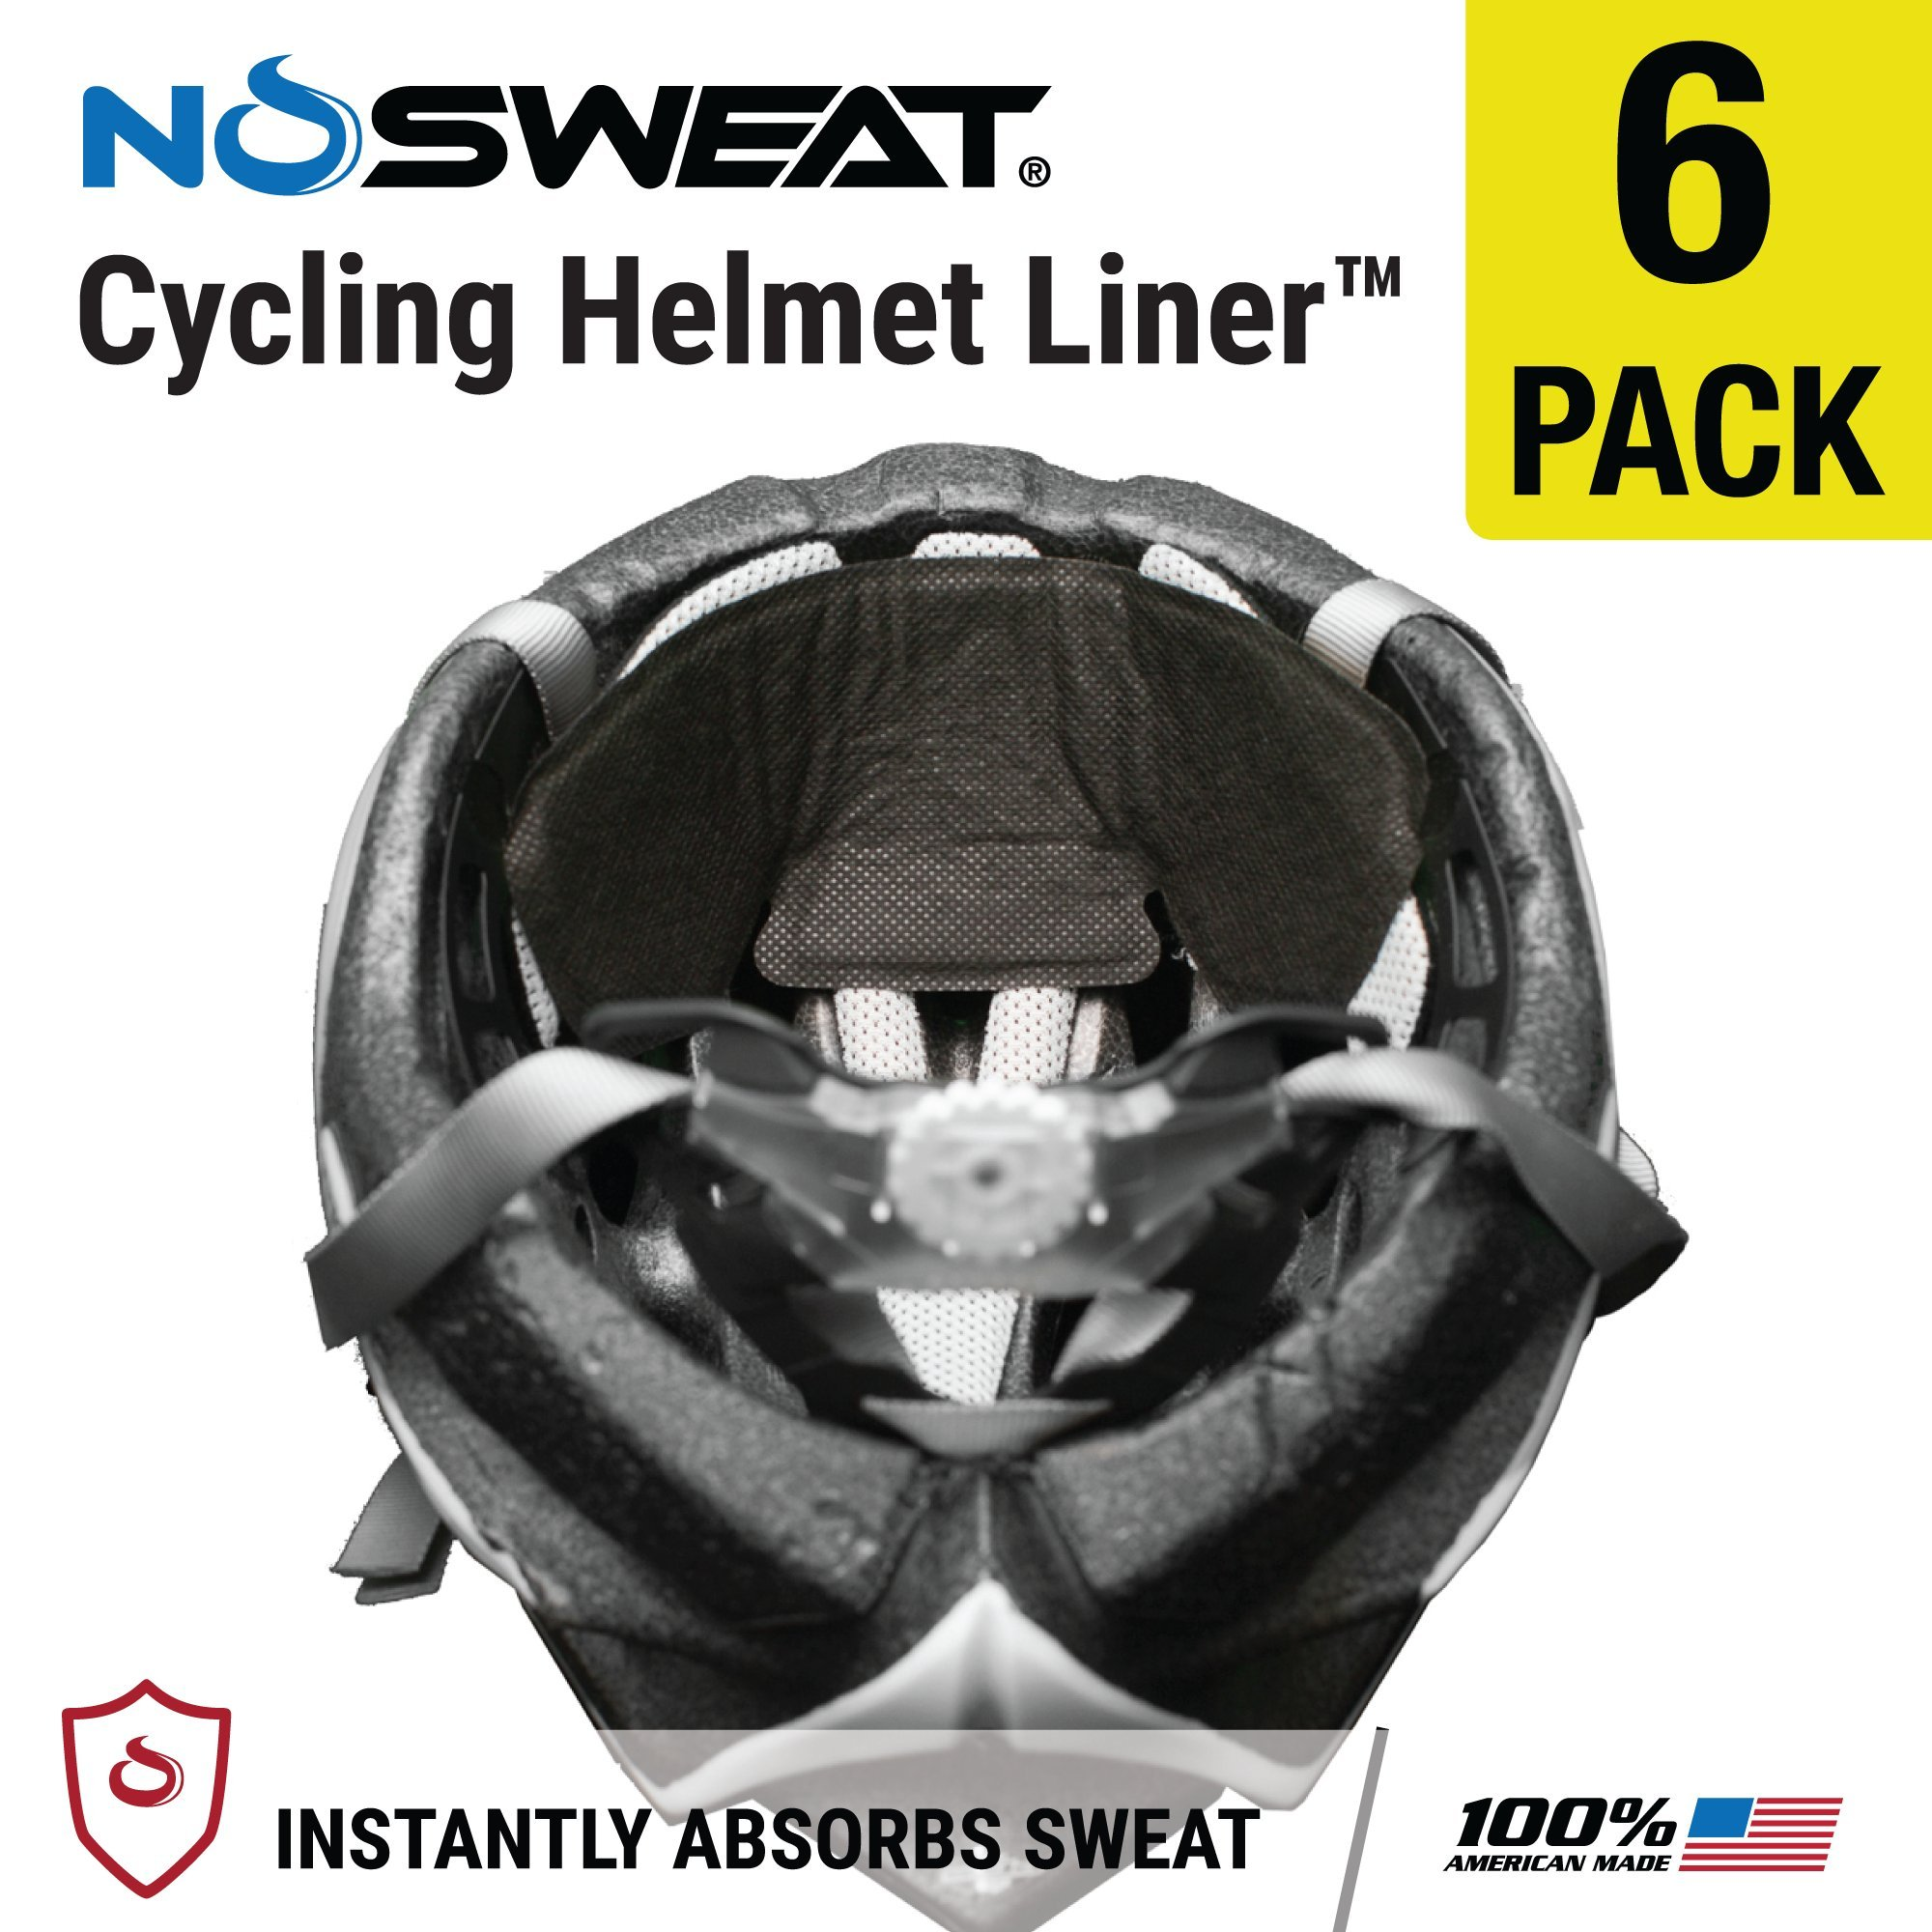 NoSweat Bike/Cycling Helmet Liner & Sweat Absorber (6 Pack)